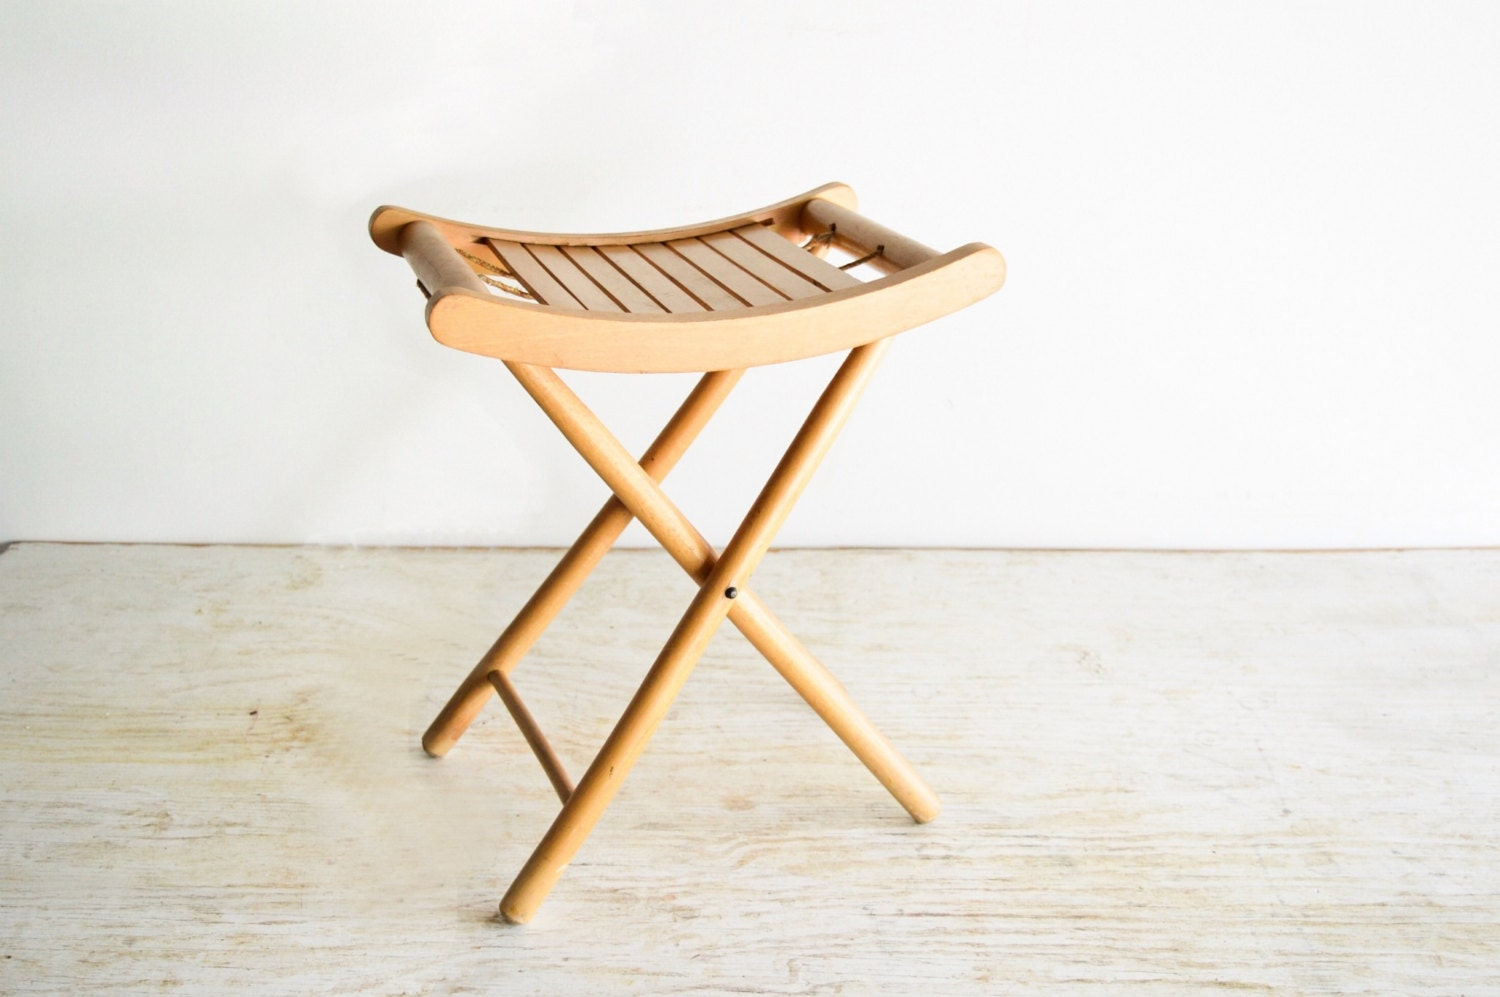 Wood Stool Camp Stool Folding Stool Camping Chair By